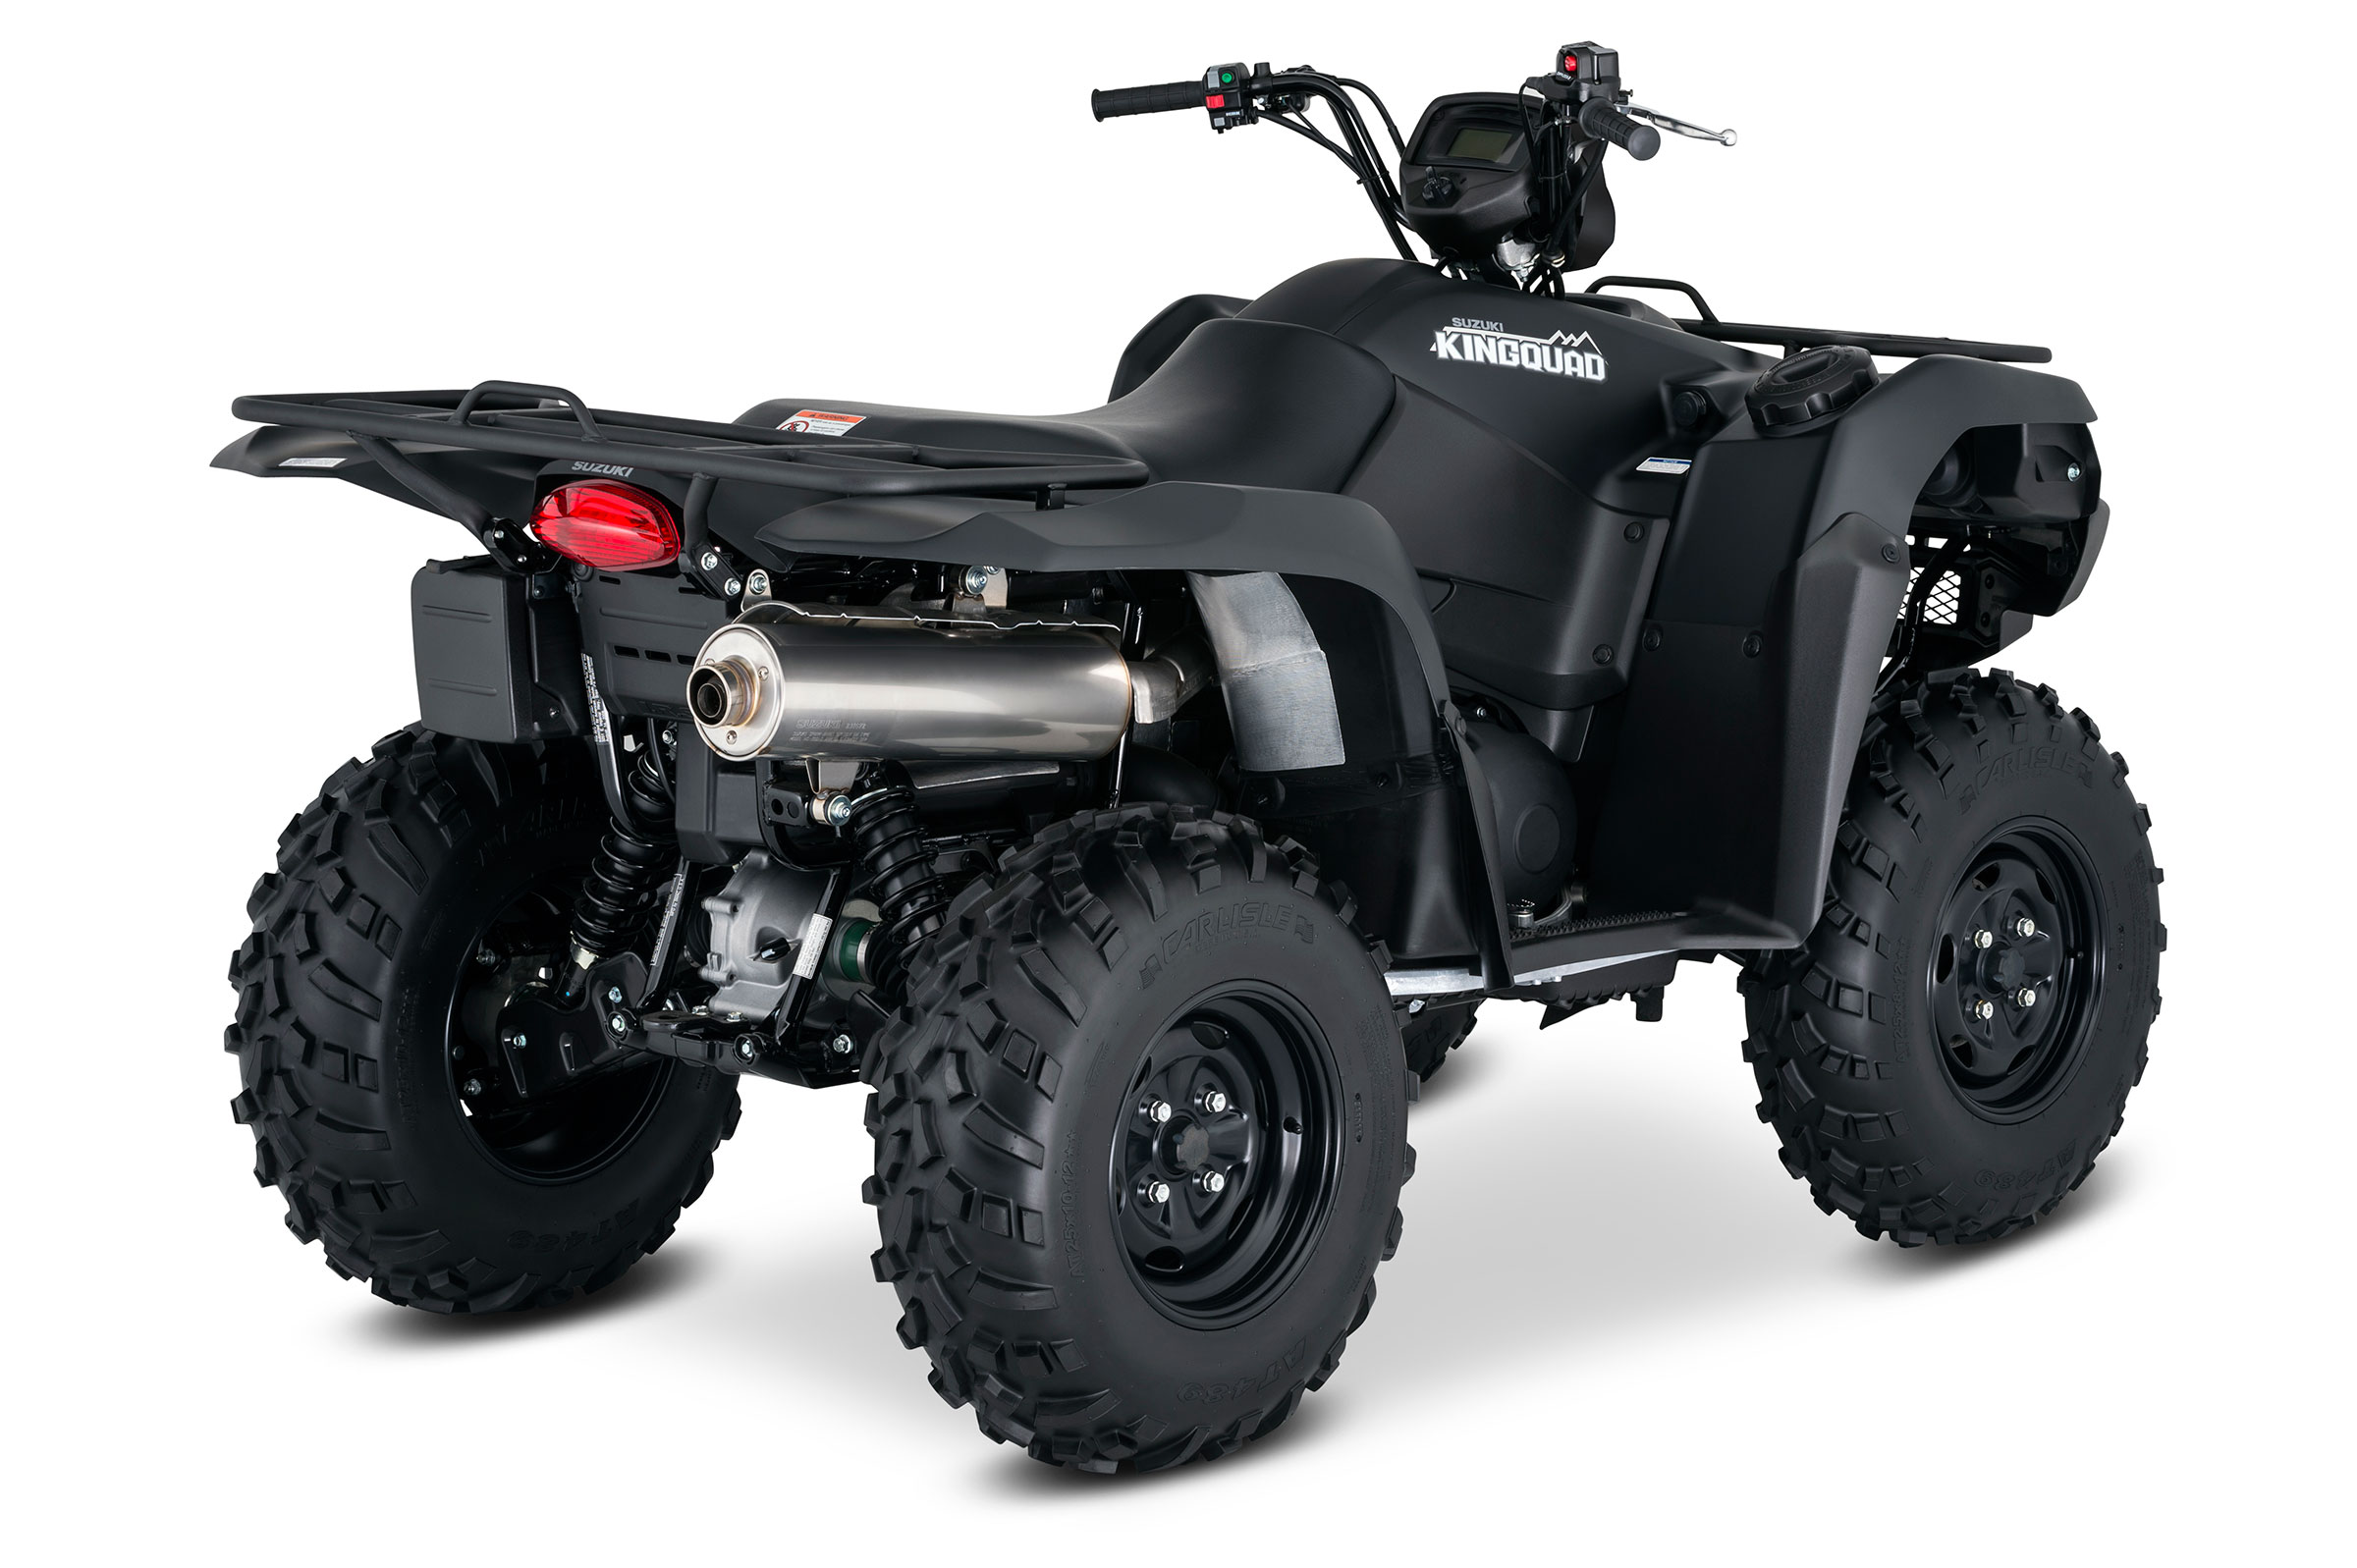 2018 suzuki king quad. exellent quad 2018 suzuki kingquad 750axi power steering special edition in miami florida and suzuki king quad k